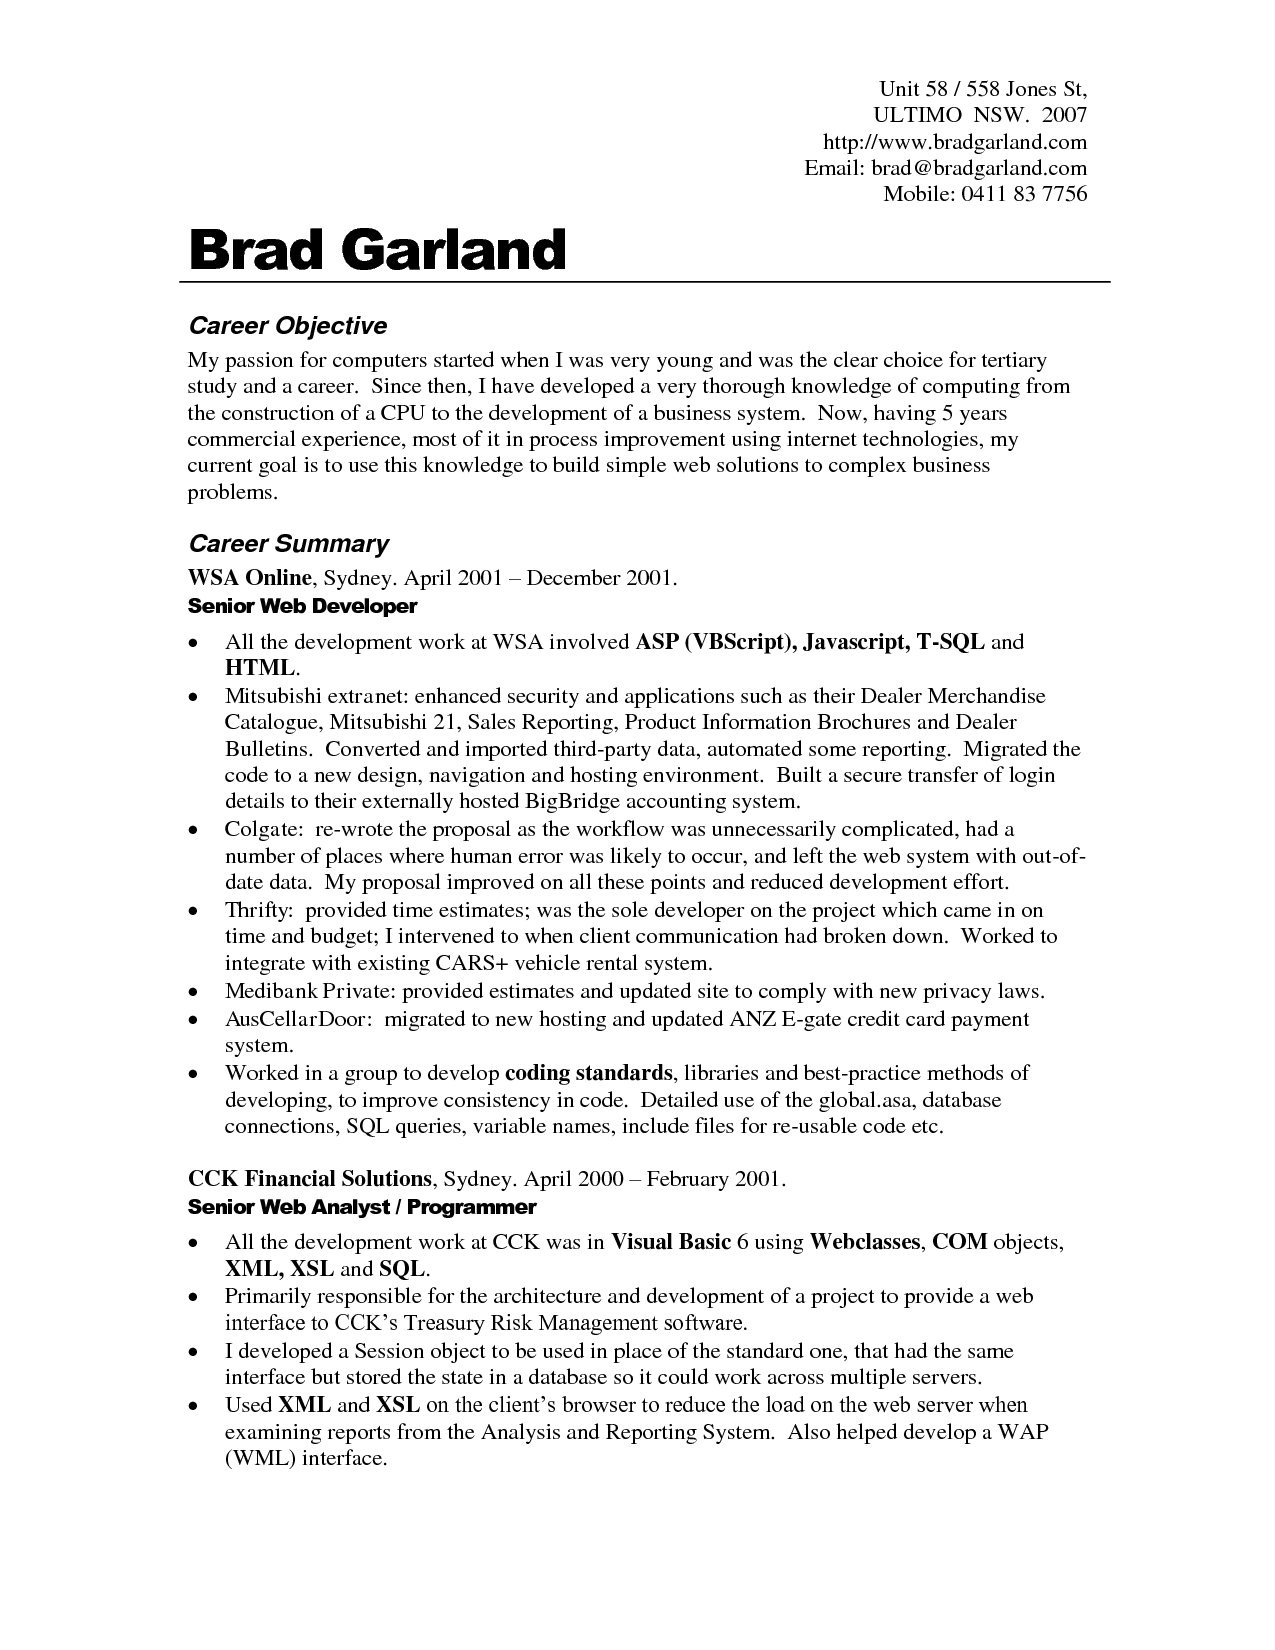 Objective Examples On Resume Resume Objectives Examples Best Templateresume Objective Examples